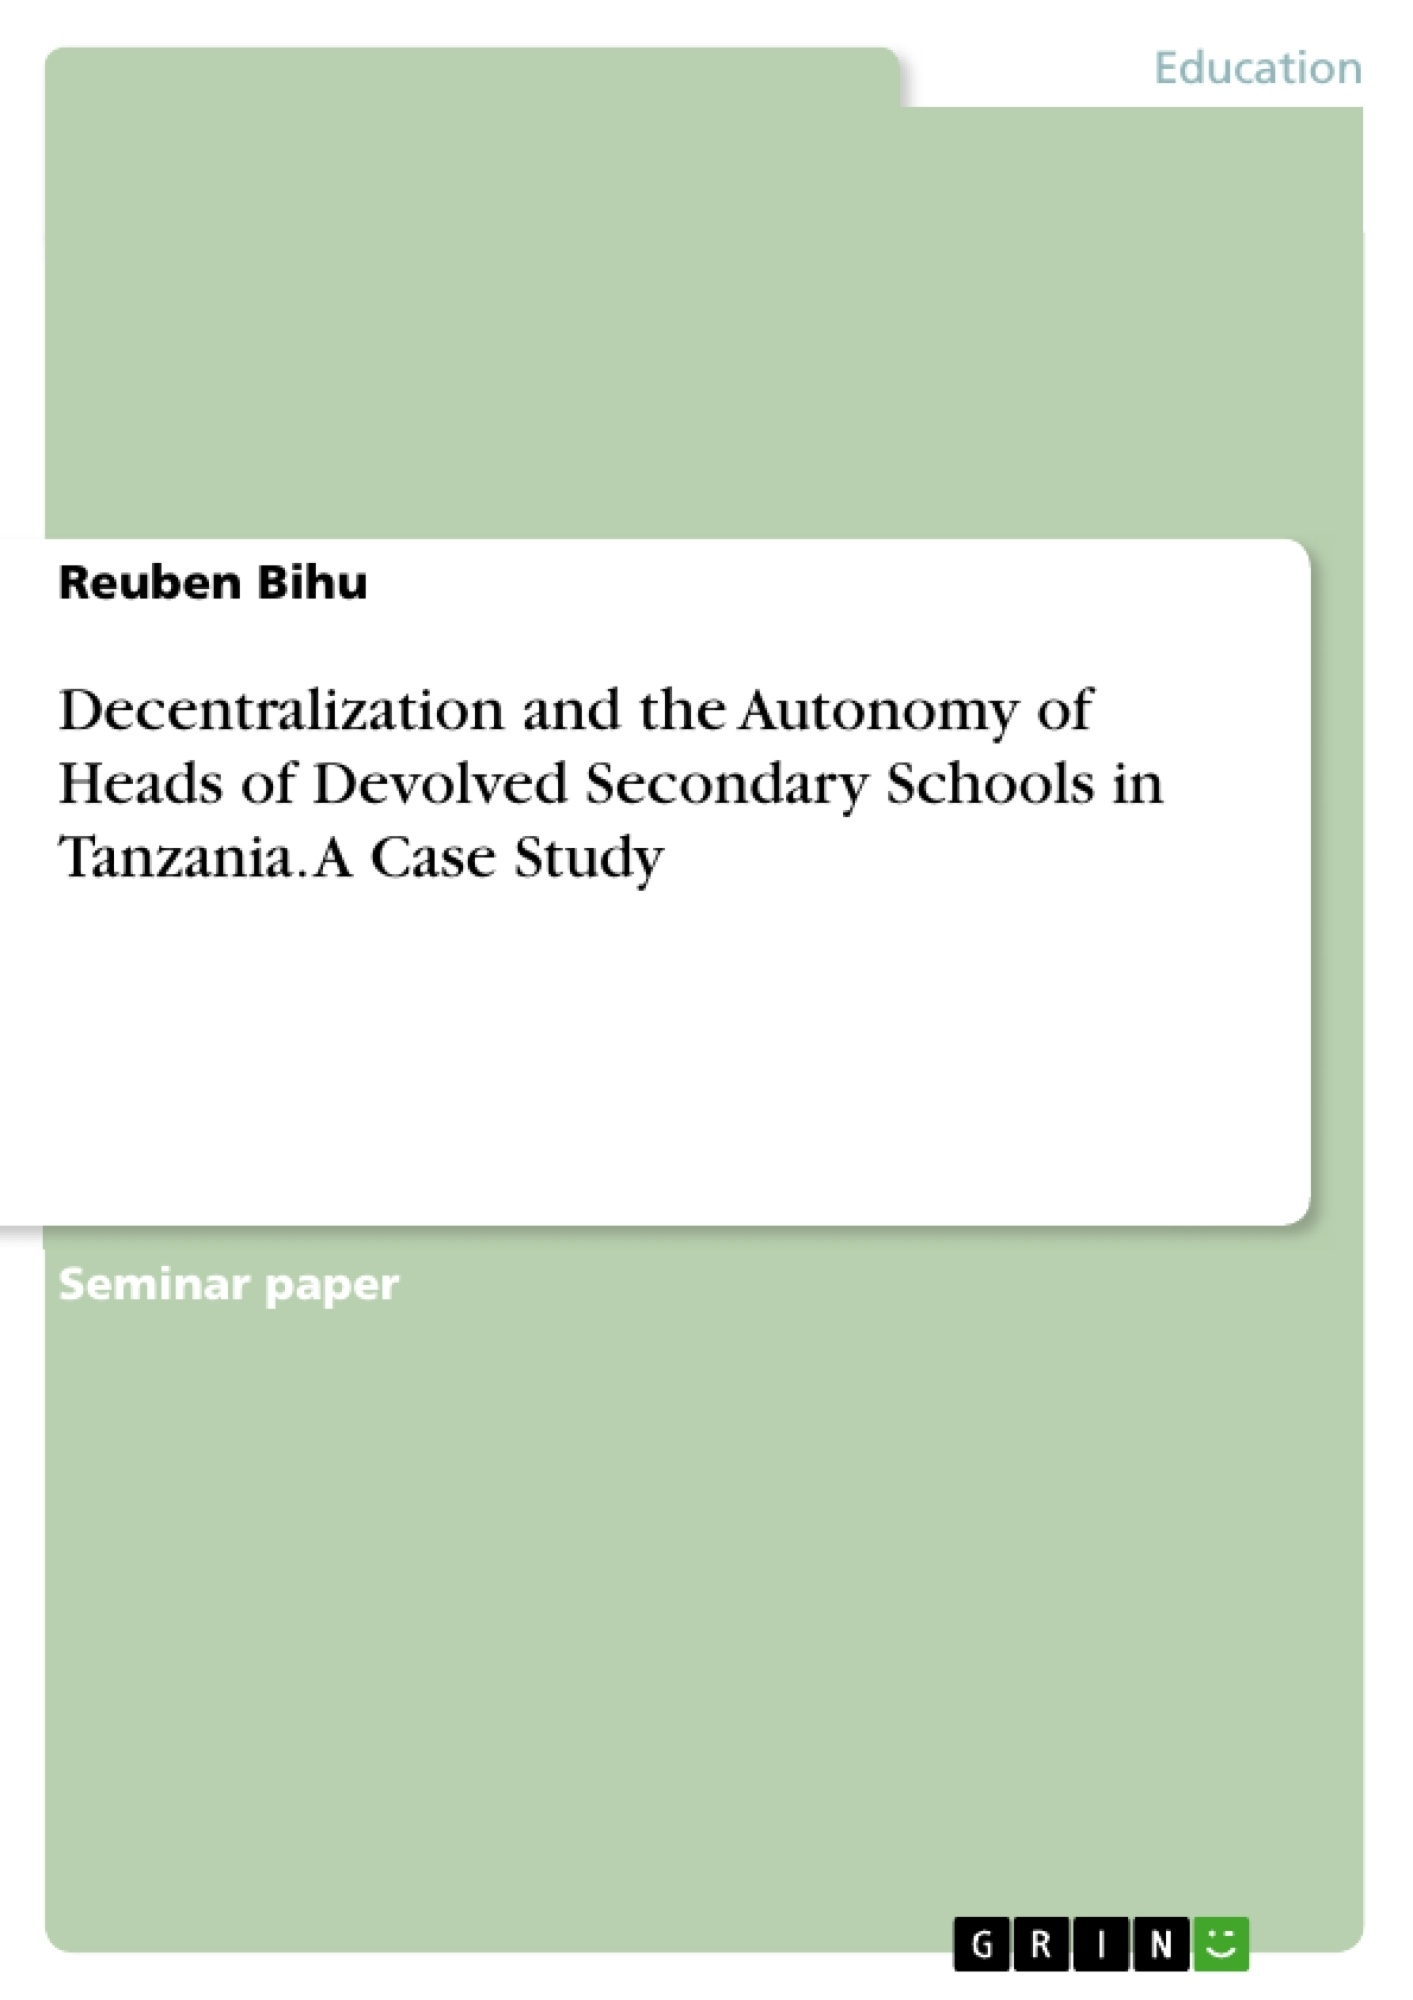 Title: Decentralization and the Autonomy of Heads of Devolved Secondary Schools in Tanzania. A Case Study